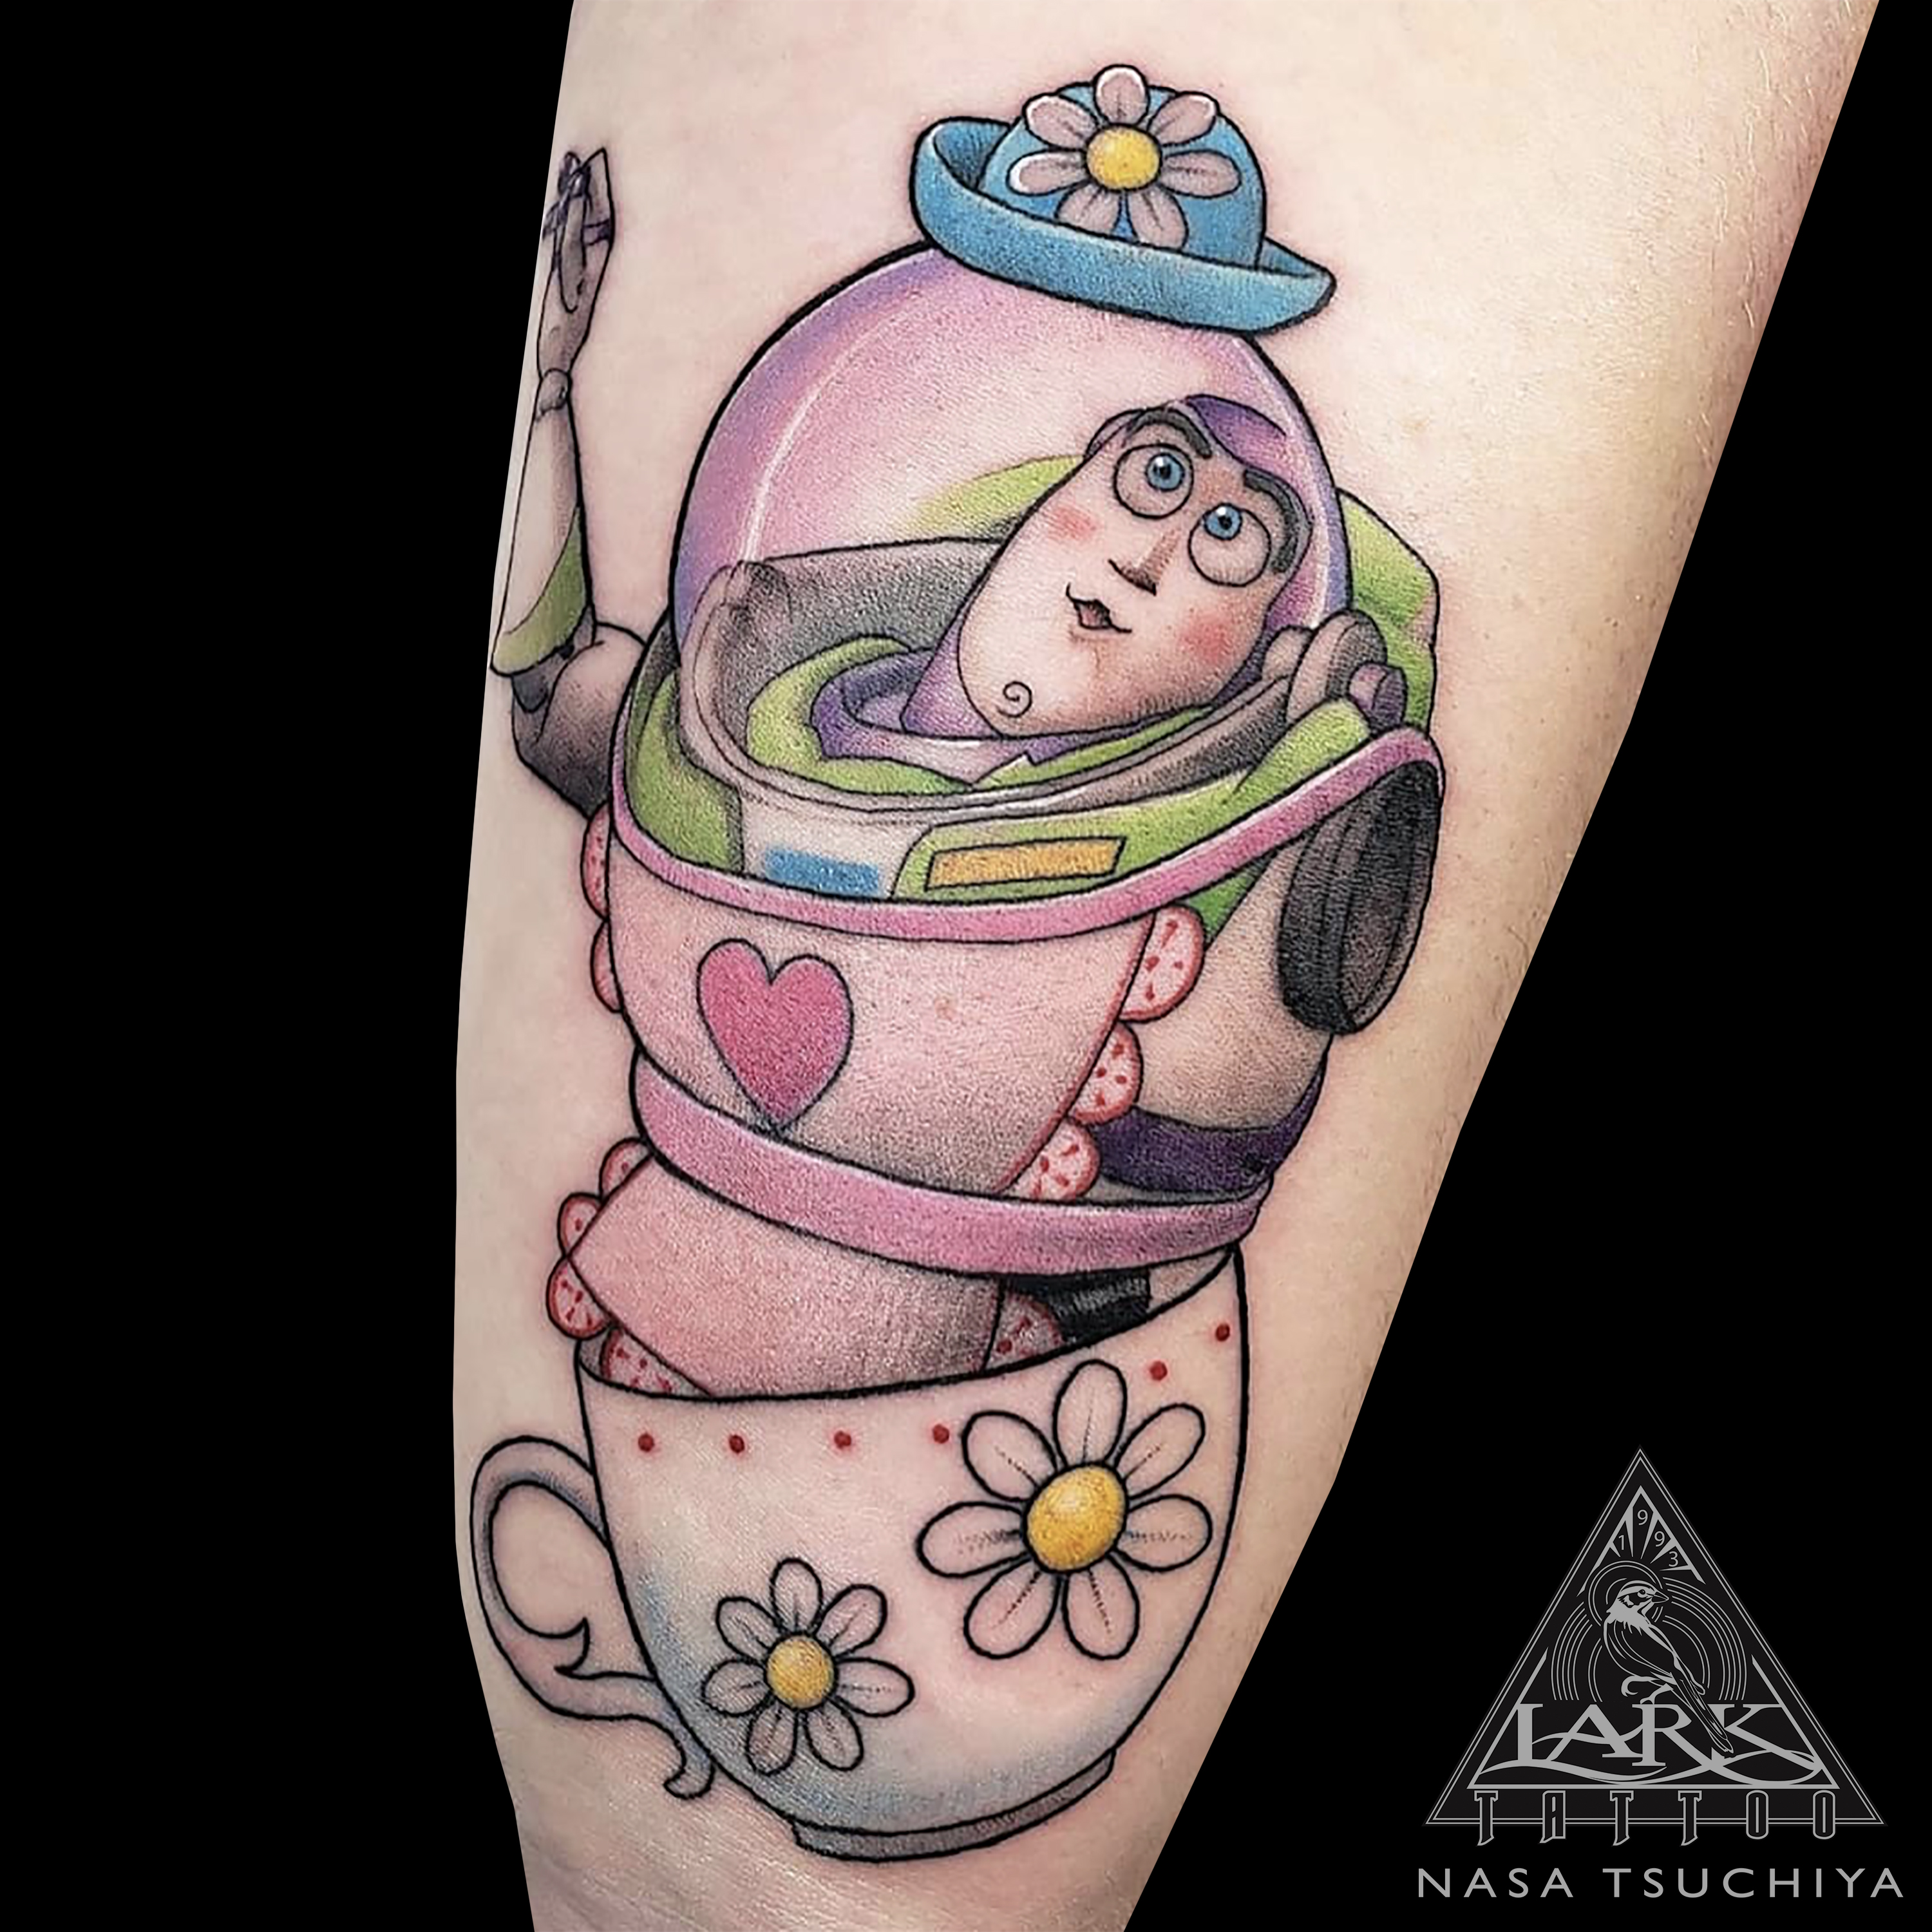 #LarkTattoo #Tattoo #Tattoos #MrsNesbitt #MrsNesbittTattoo #IAmMrsNesbitt #IAmMrsNesbittTattoo #Nesbitt #NesbittTattoo #IThinkYouveHadEnoughTeaForToday #SnapOutOfItBuzz #TellMeTheHatLooksGood #Buzz #BuzzTattoo #BuzzLightyear #BuzzLightyearTattoo #ToyStory #ToyStoryTattoo #SpaceRanger #SpaceRangerTattoo #TimAllen #TimAllenTattoo #Pixar #PixarTattoo #ColorTattoo #CartoonTattoo #TattooArtist #LongIslandTattooArtist #LongIslandTattooer #LongIslandTattoo #Tattoist #Tattooer #TattooOfTheDay #Tat #Tats #Tatts #Tatted #Inked #Ink #TattooInk #AmazingInk #AmazingTattoo #BodyArt #LarkTattooWestbury #Westbury #LongIsland #NY #NewYork #USA #Art #Tattedup #InkedUp #LarkTattoos